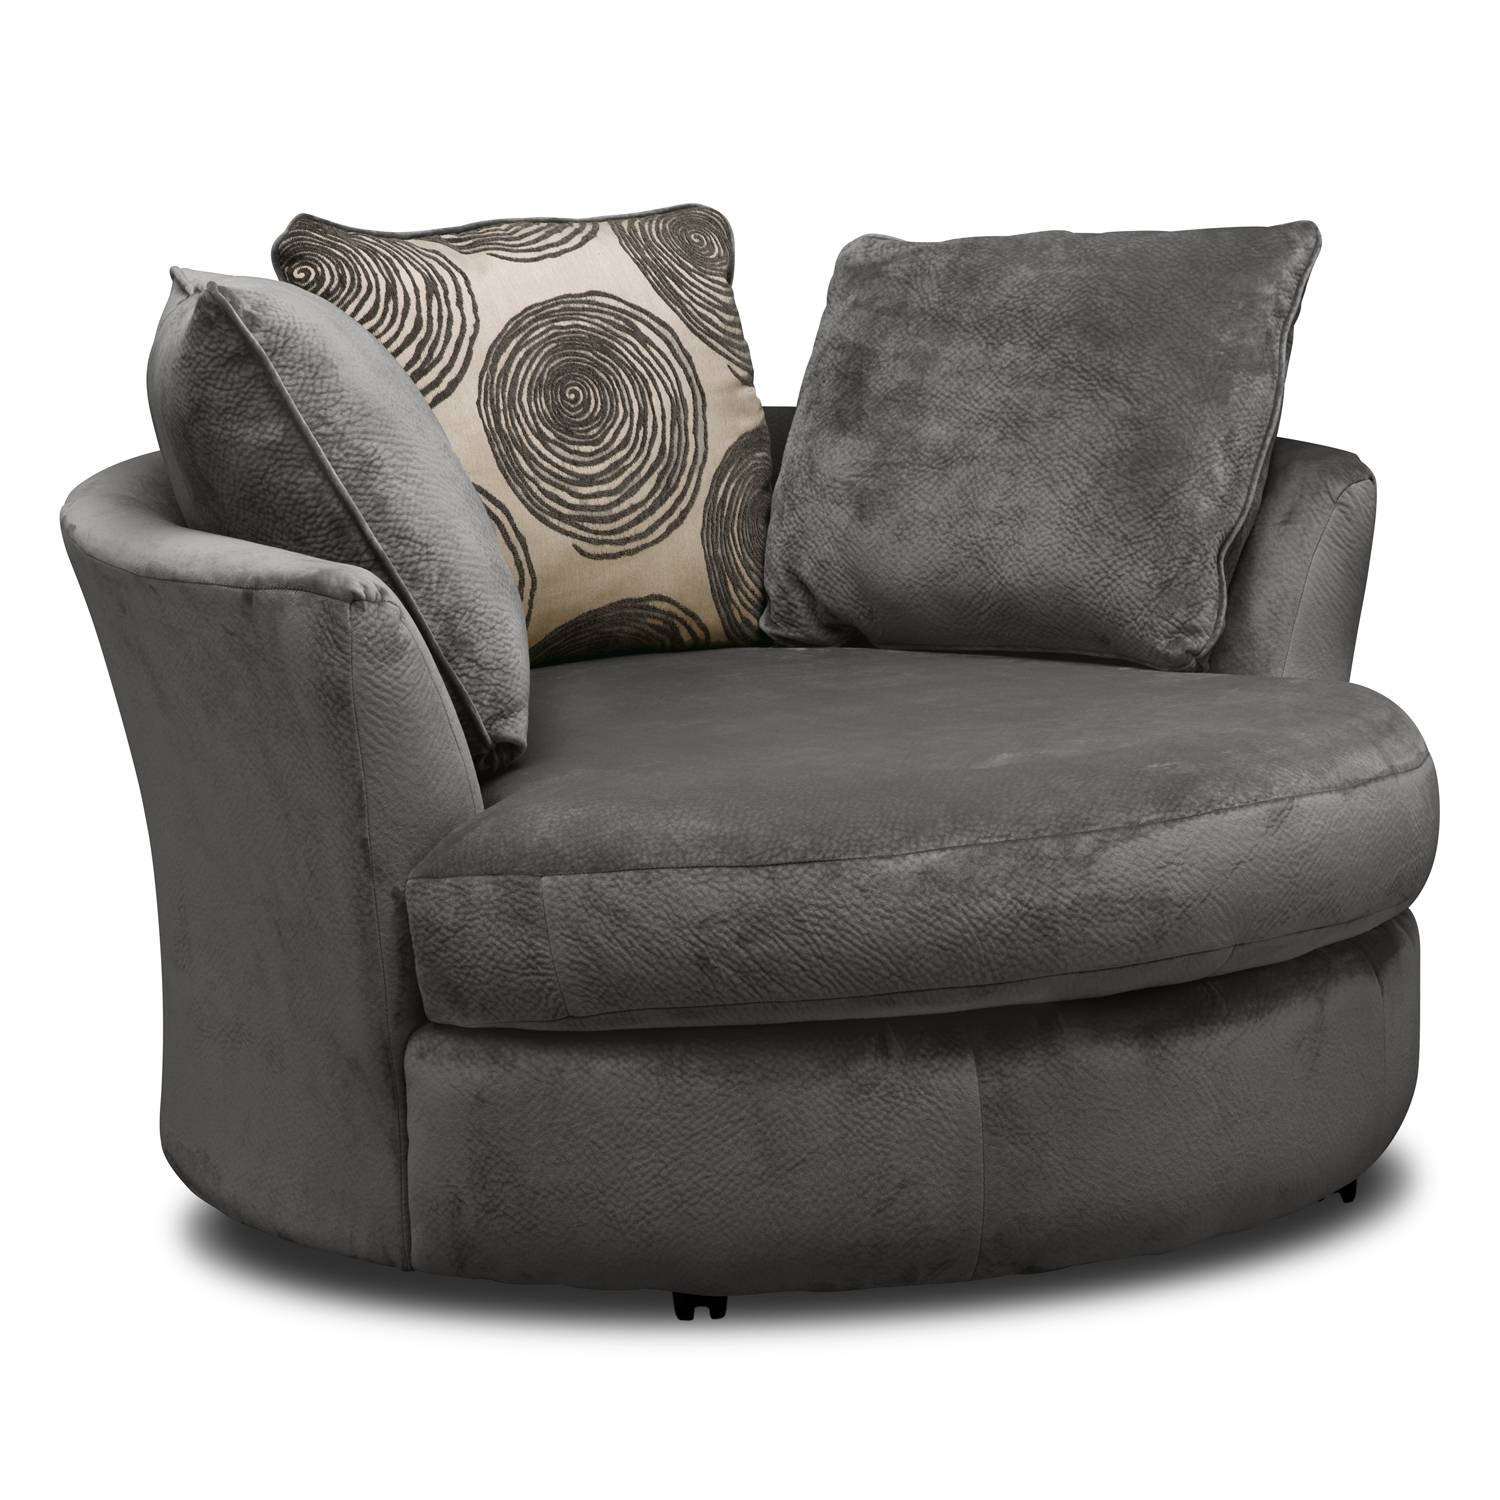 Round Sofa Chair with regard to Circle Sofa Chairs (Image 22 of 30)